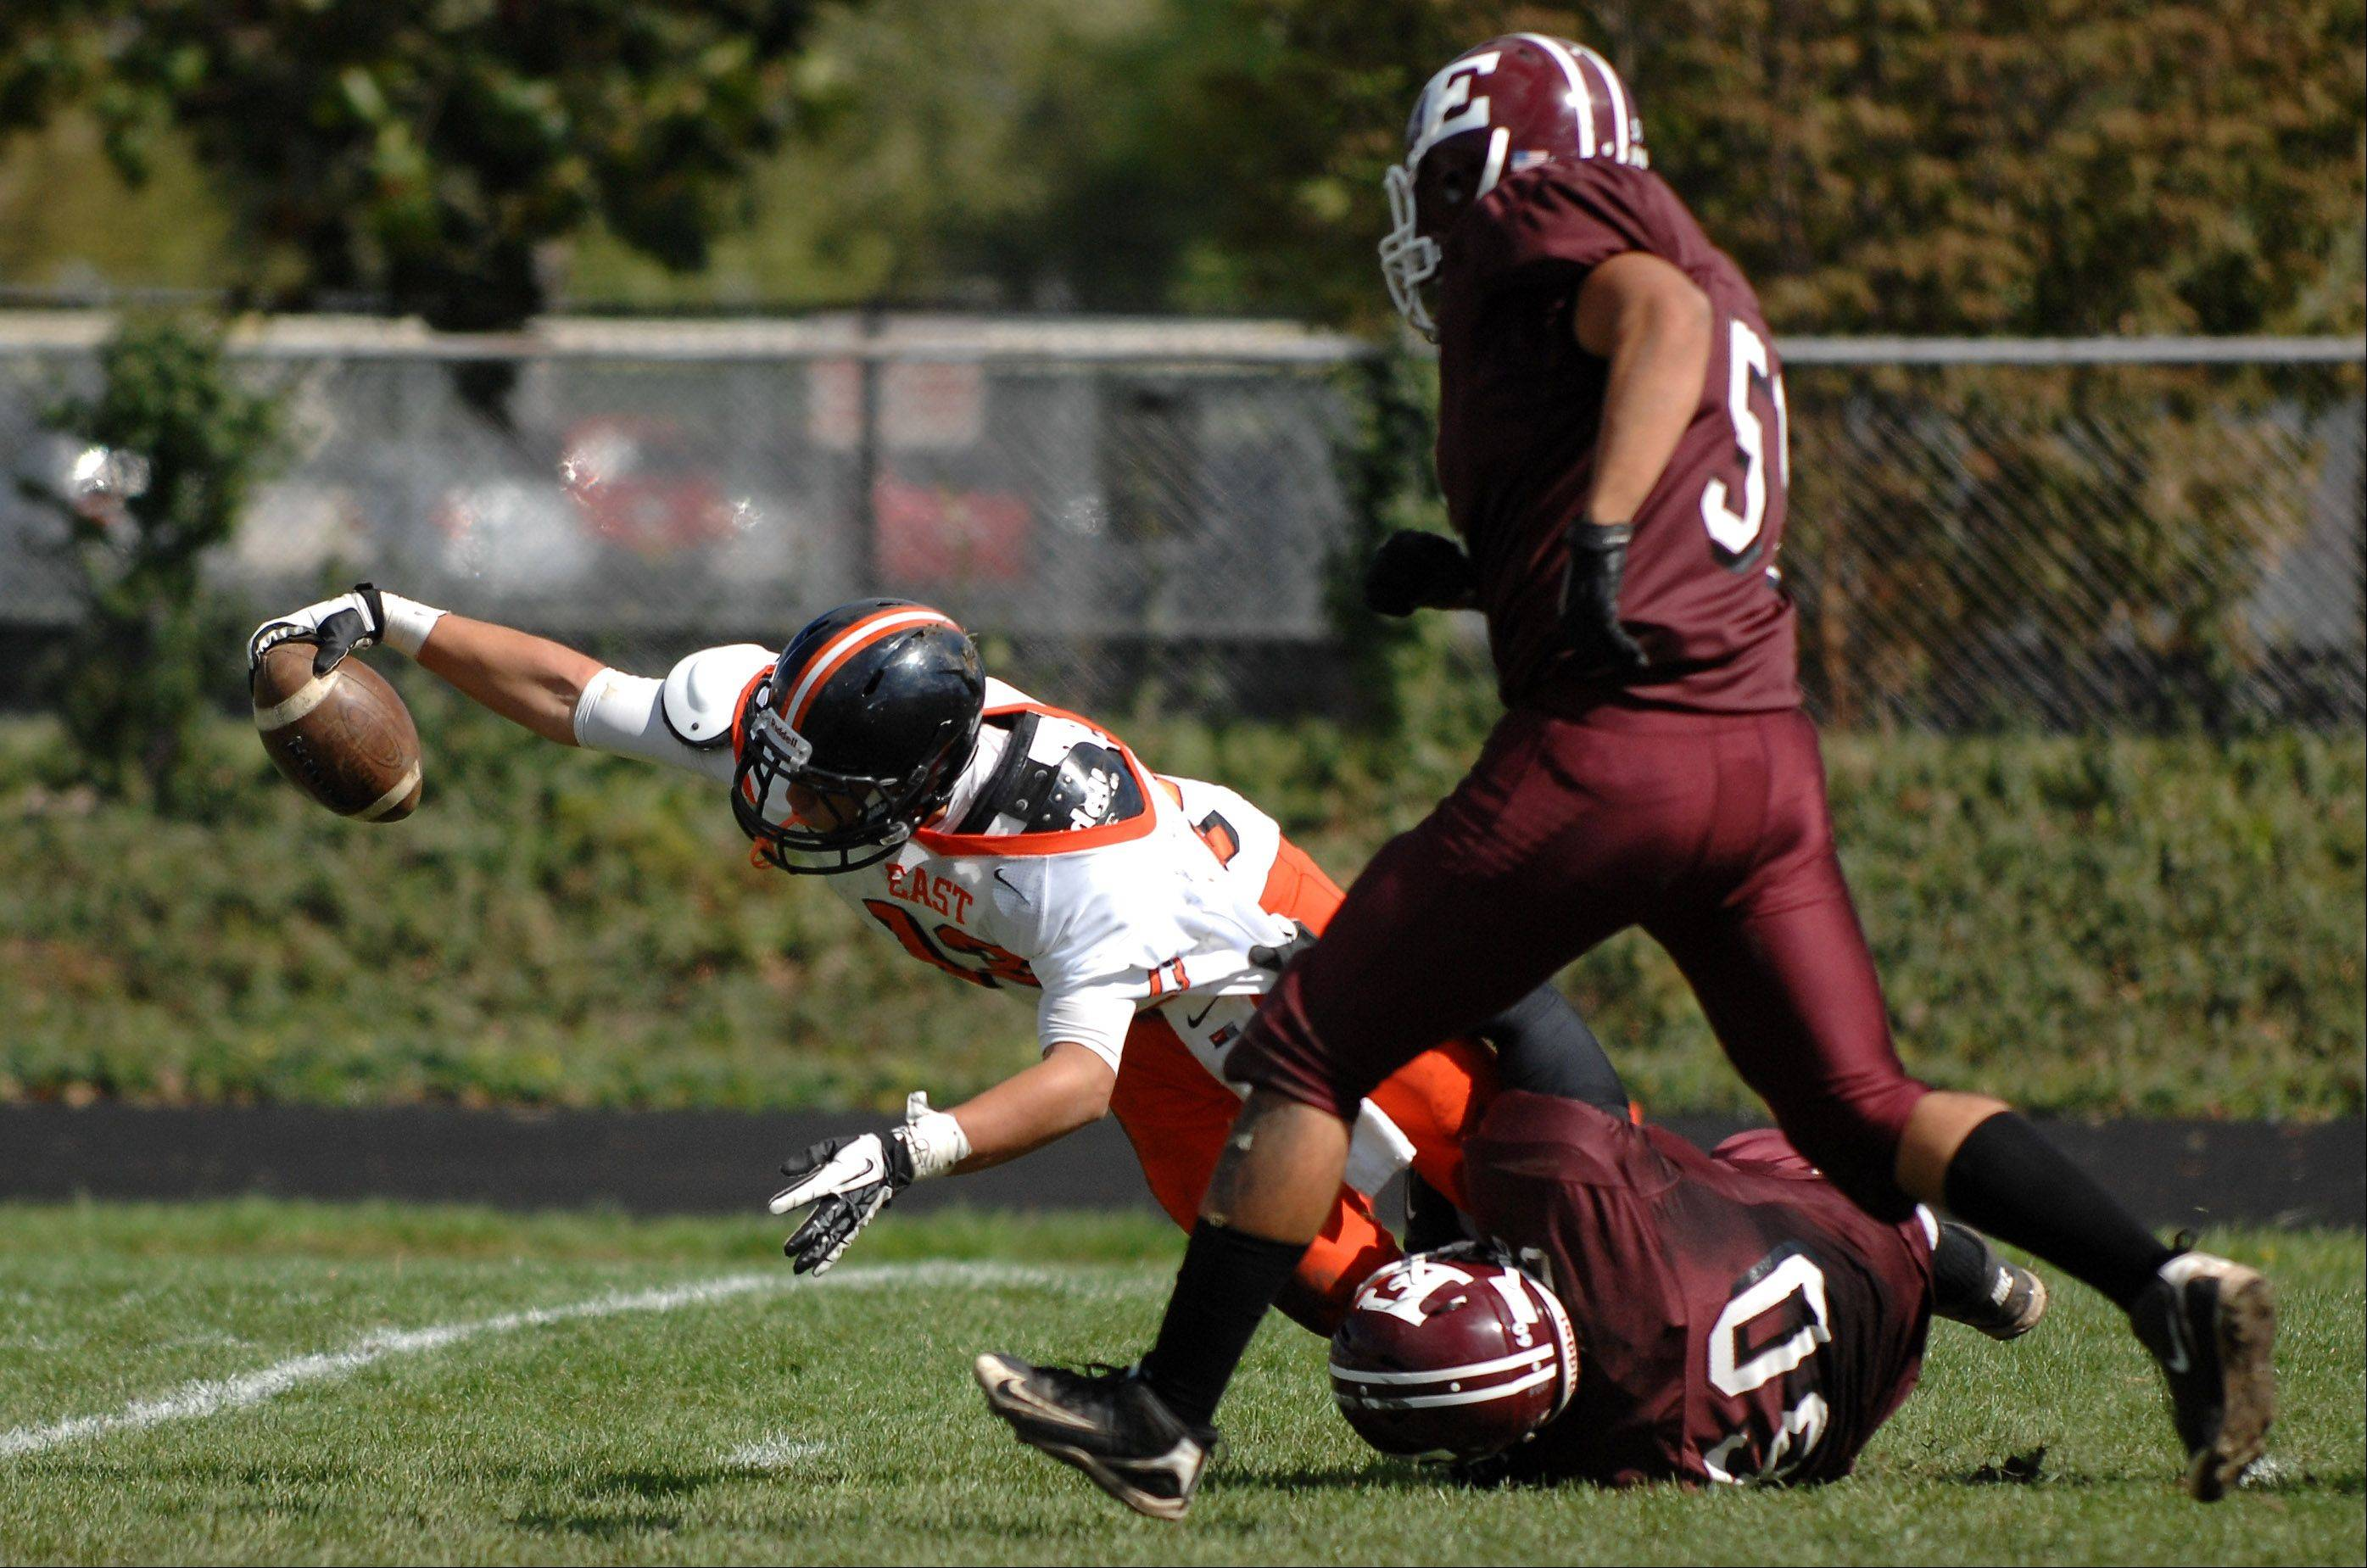 St. Charles East's Anthony Sciarrino dives and stretches for the goal line while scoring on a punt return against Elgin during Saturday's game at Memorial Field in Elgin.